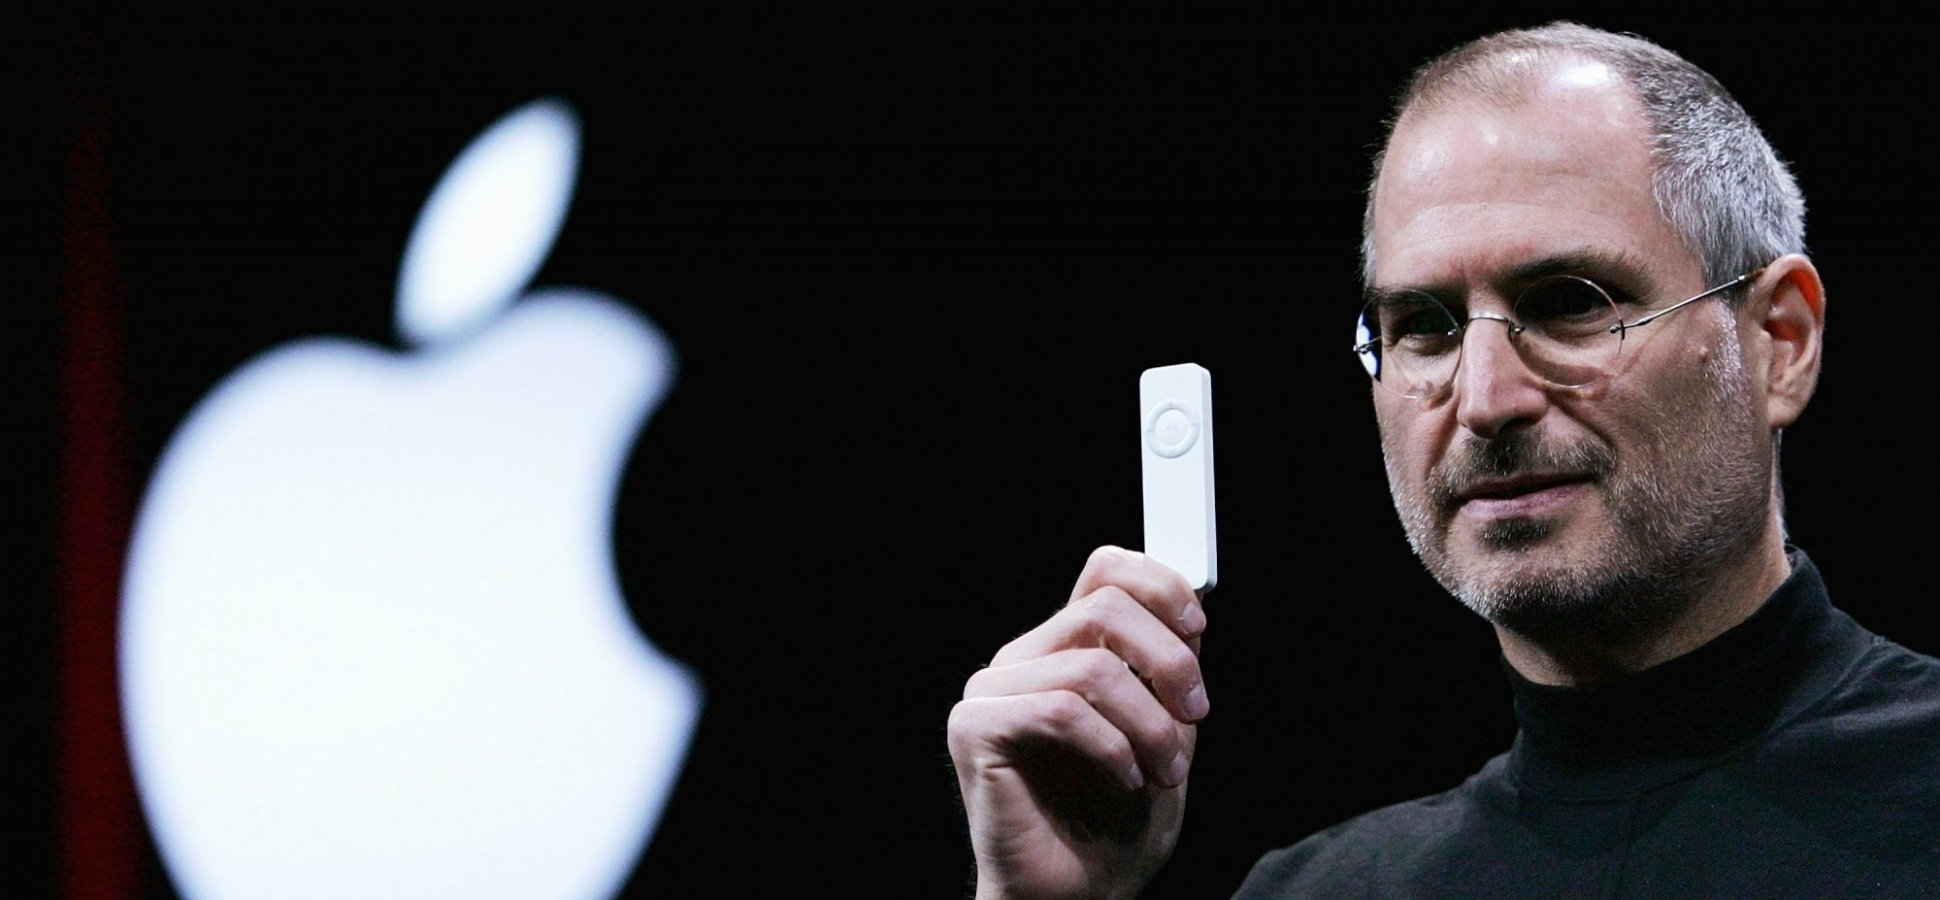 The 2 Questions Steve Jobs Used to Get Brutally Honest Feedback